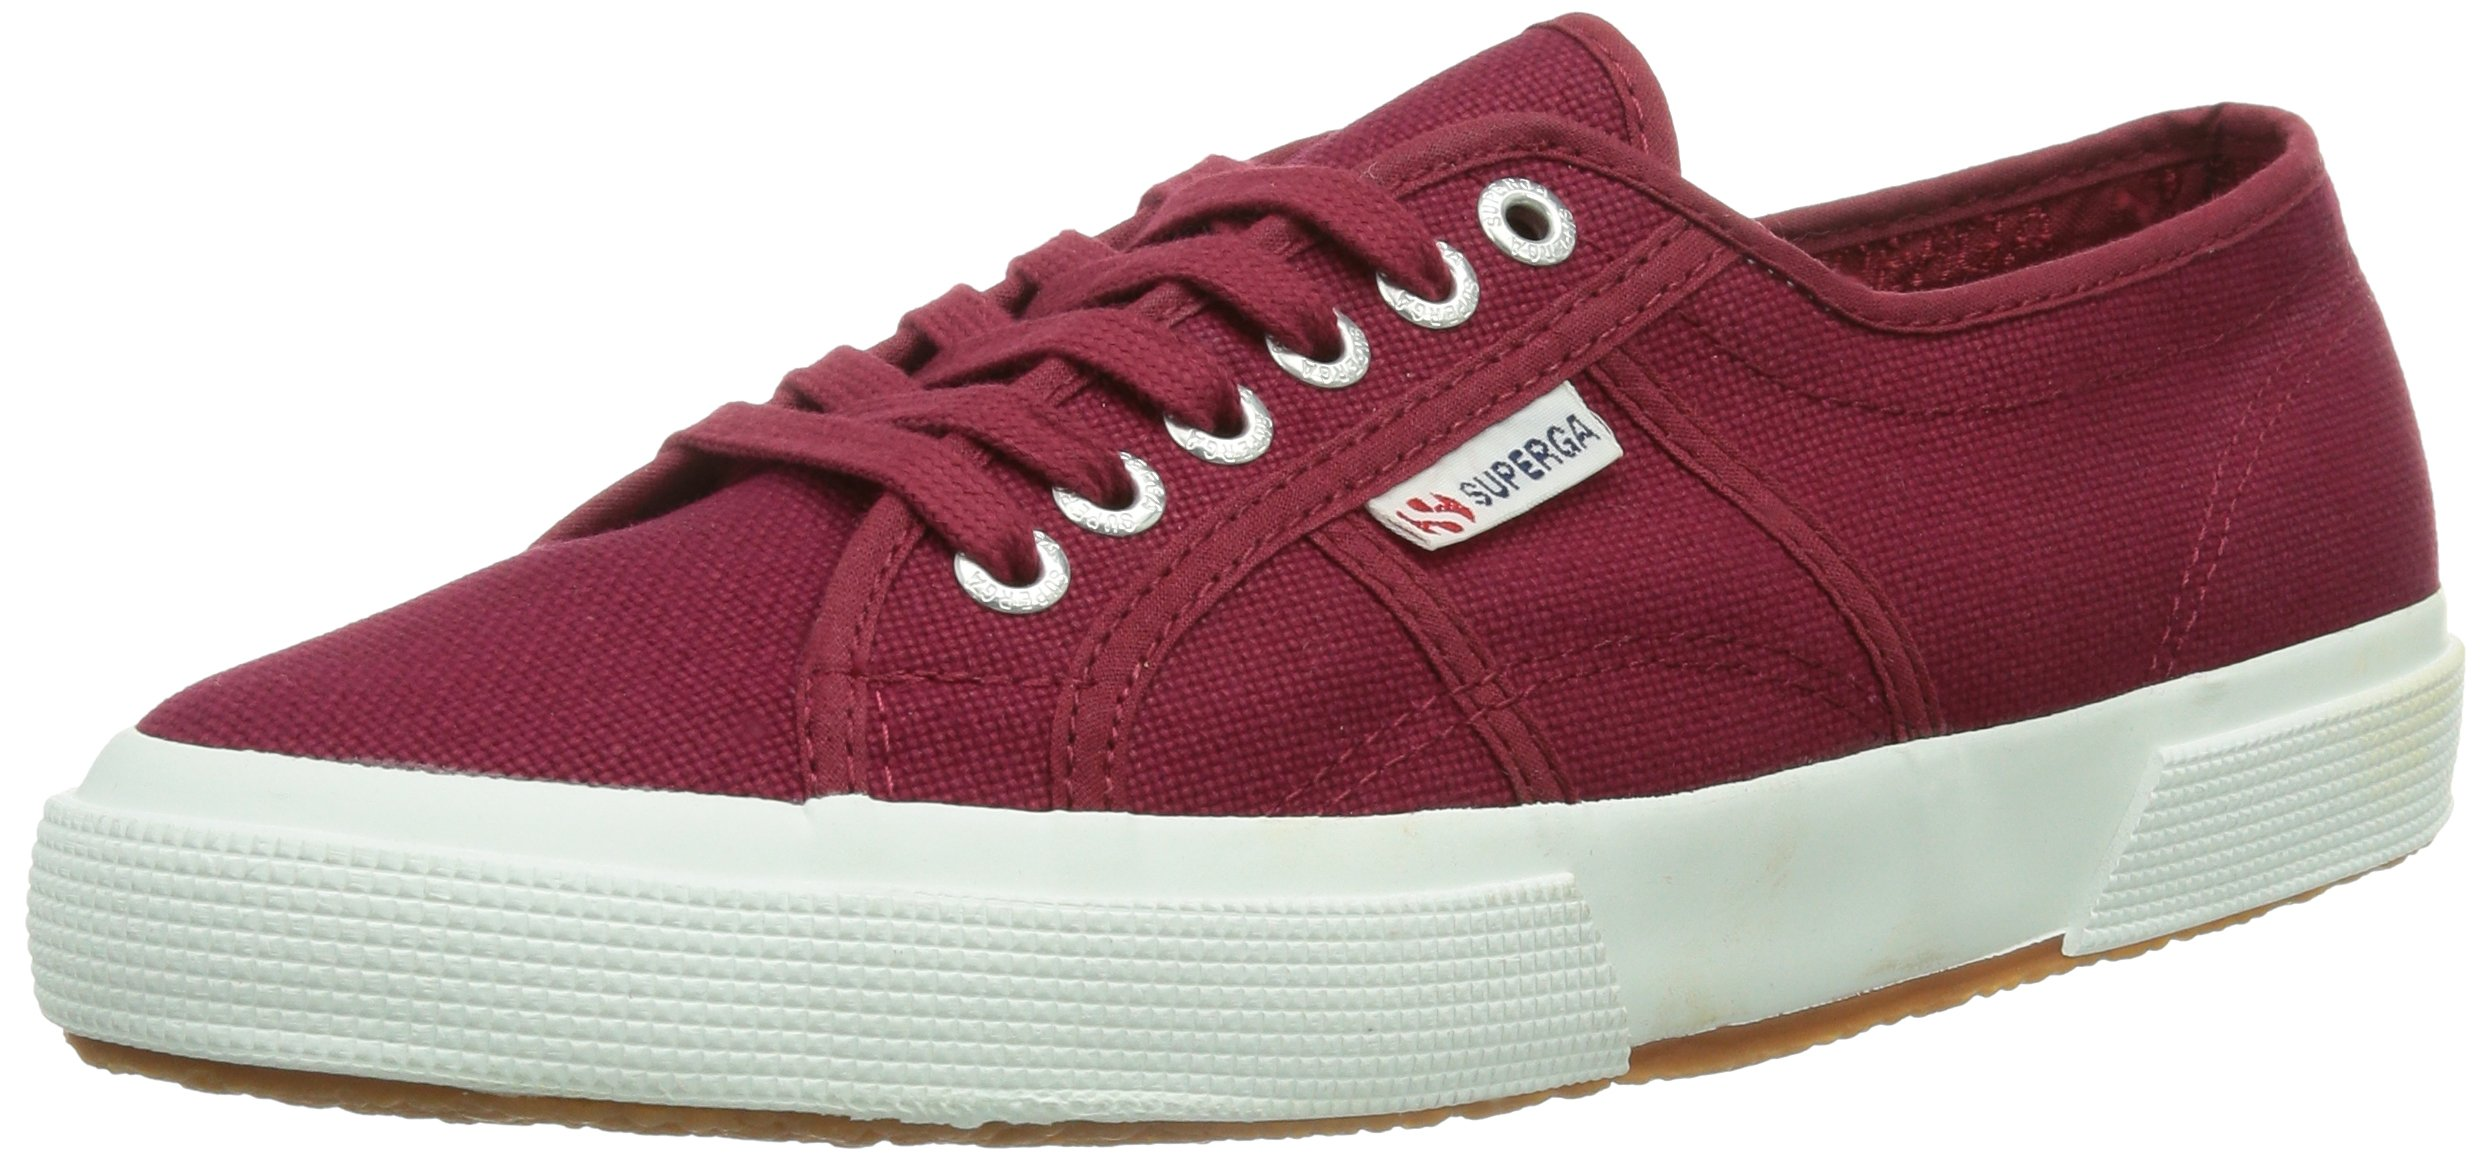 AdulteRougerot Eu Superga Classic'Baskets 5 2750 842 Cotu Mixte QrdoCWxBe